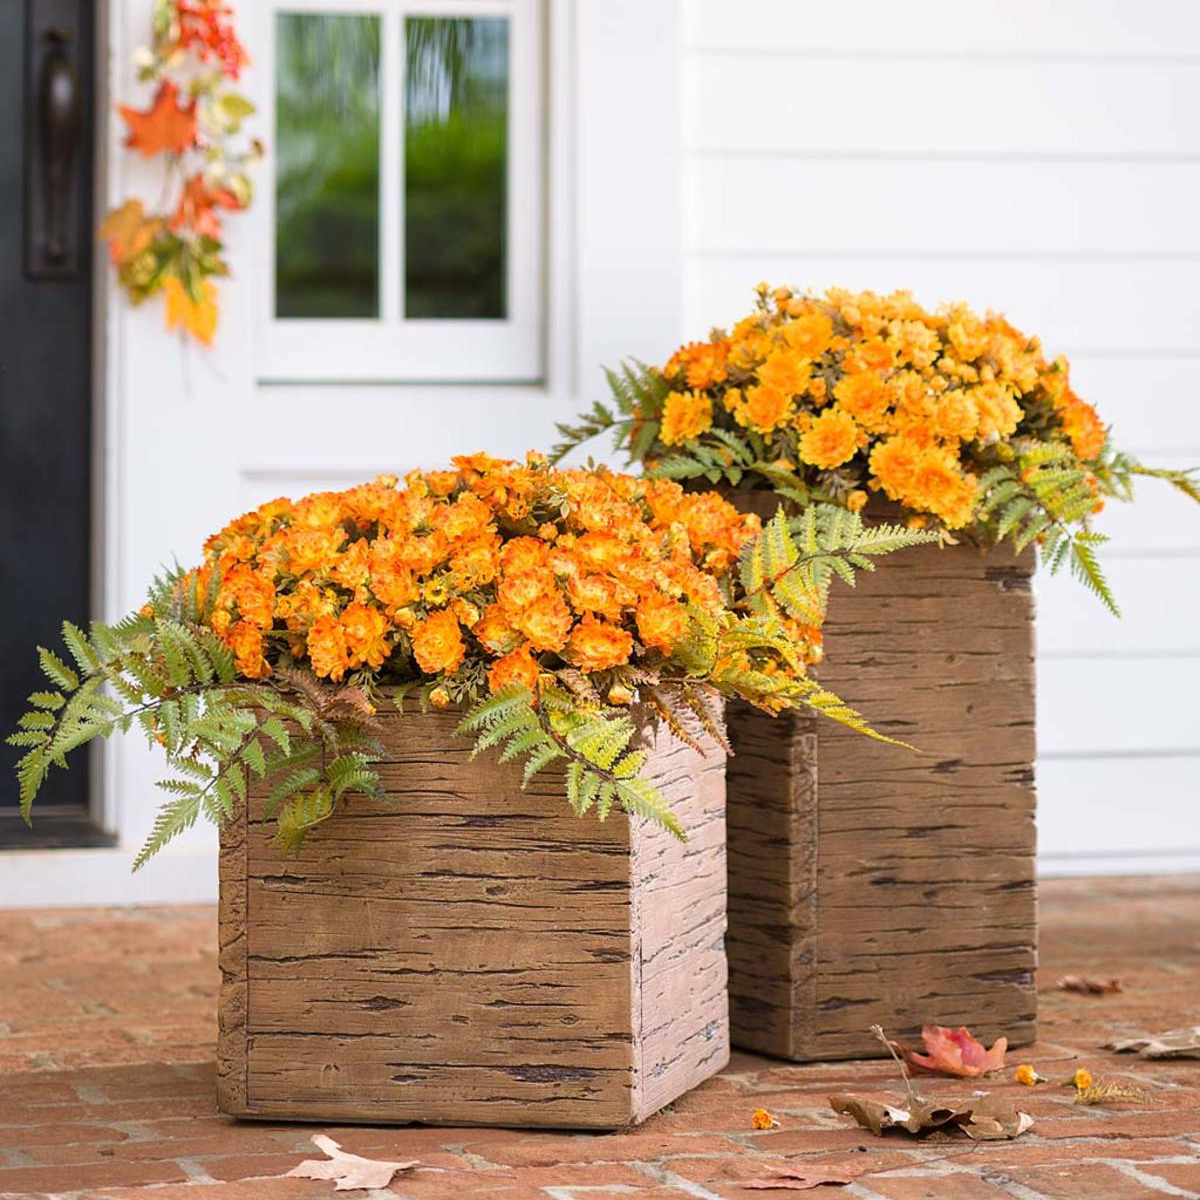 Two planters sold by Plow & Hearth full of fall flowers